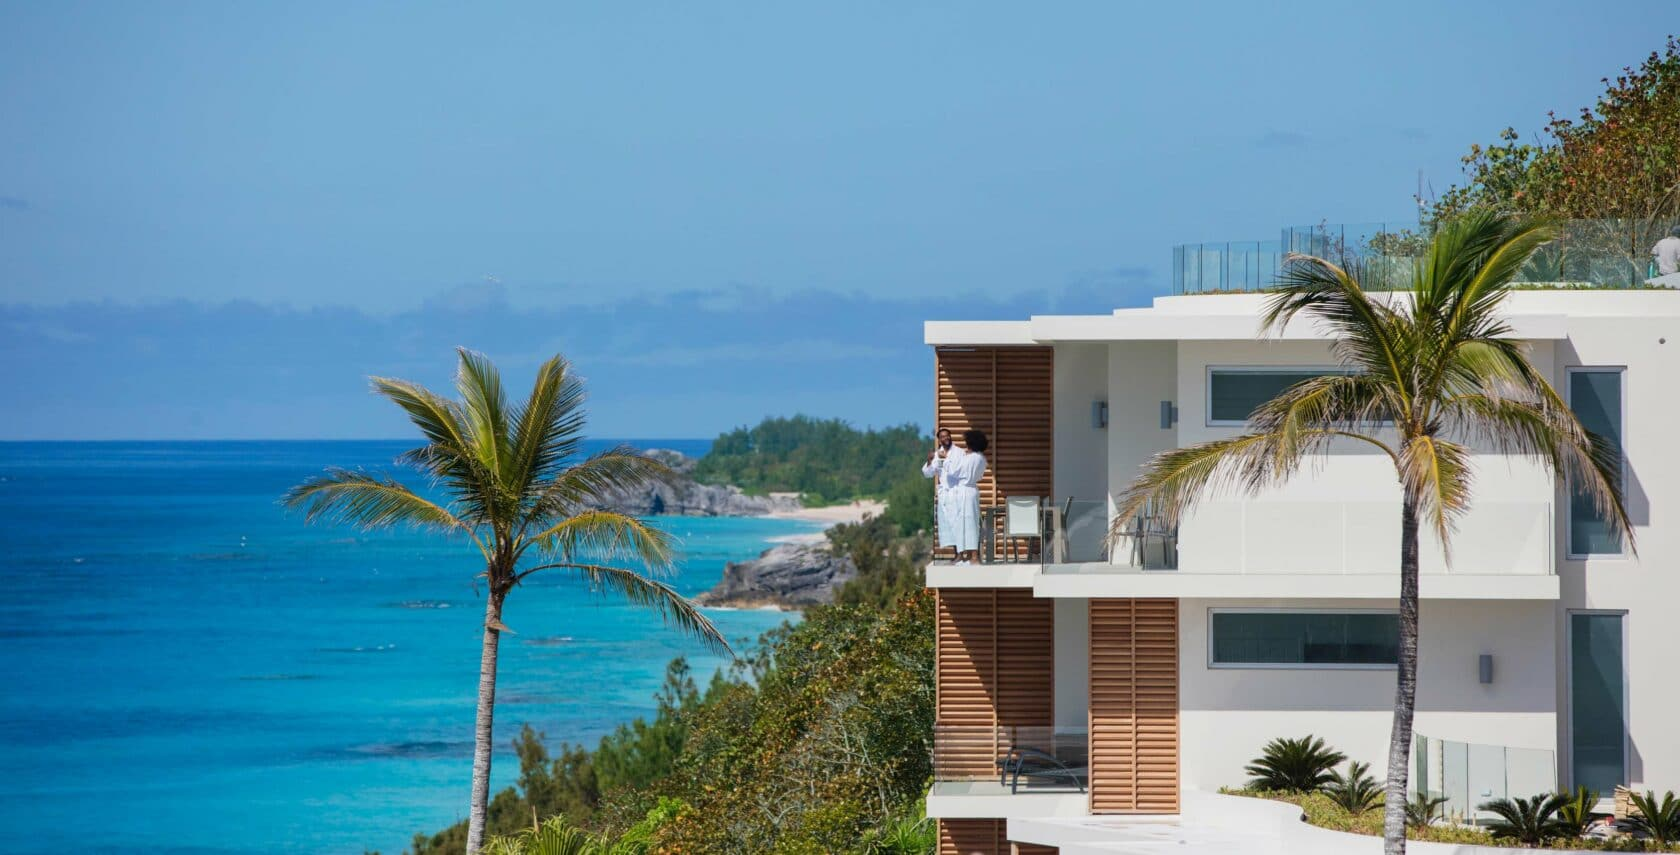 A couple on a balcony of a resort overlooking the ocean.